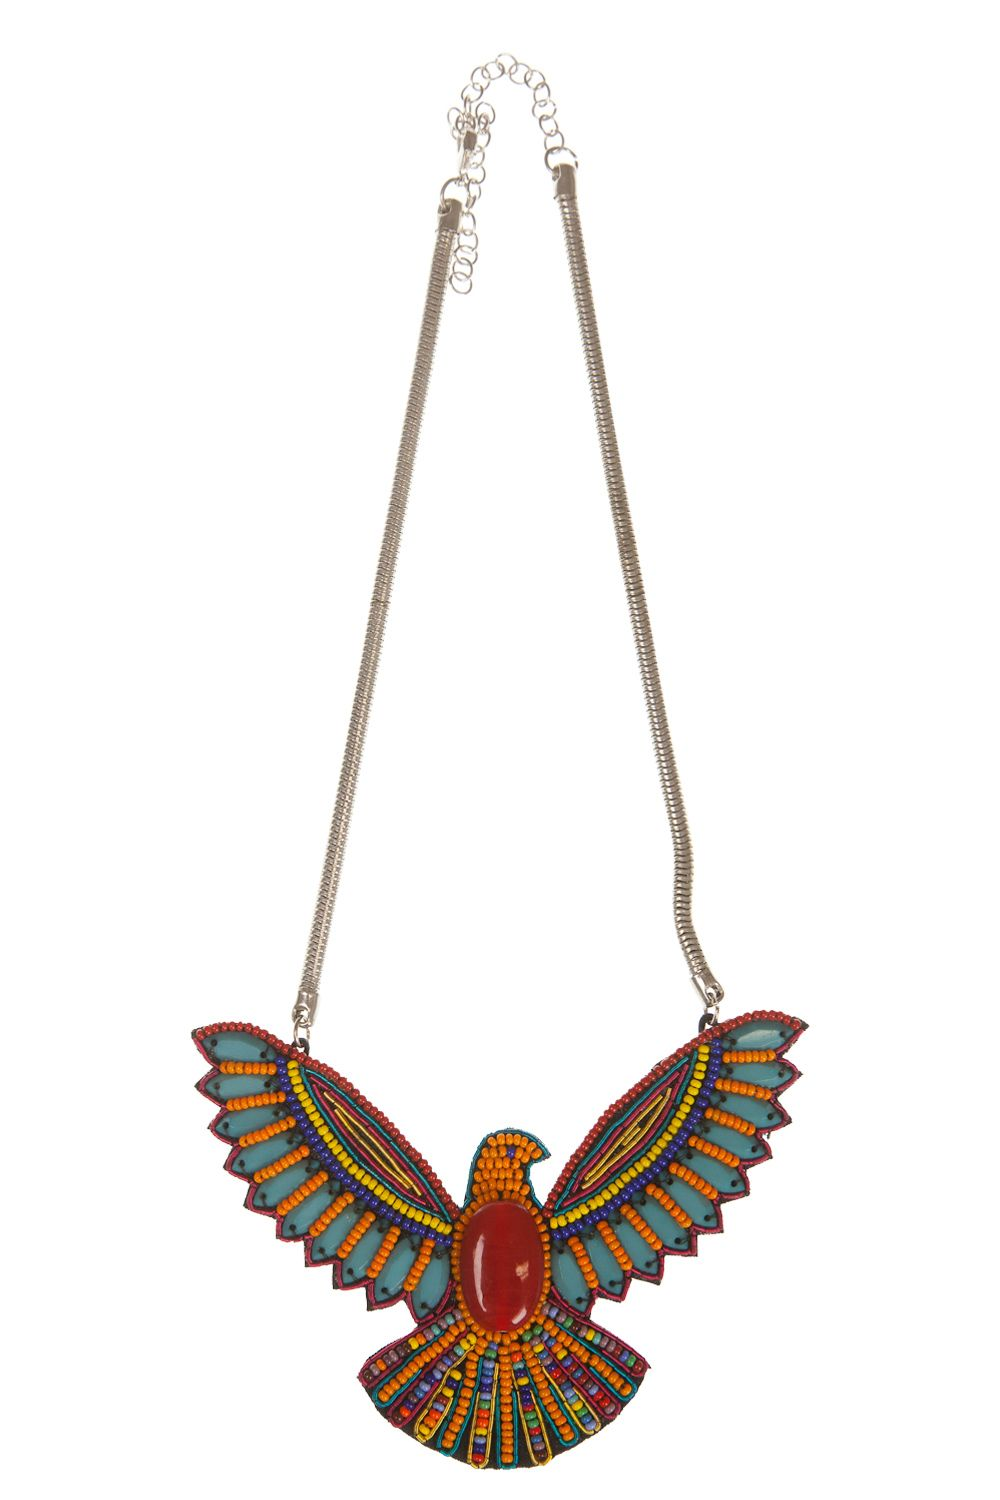 great necklace would look good with worn denim shirt